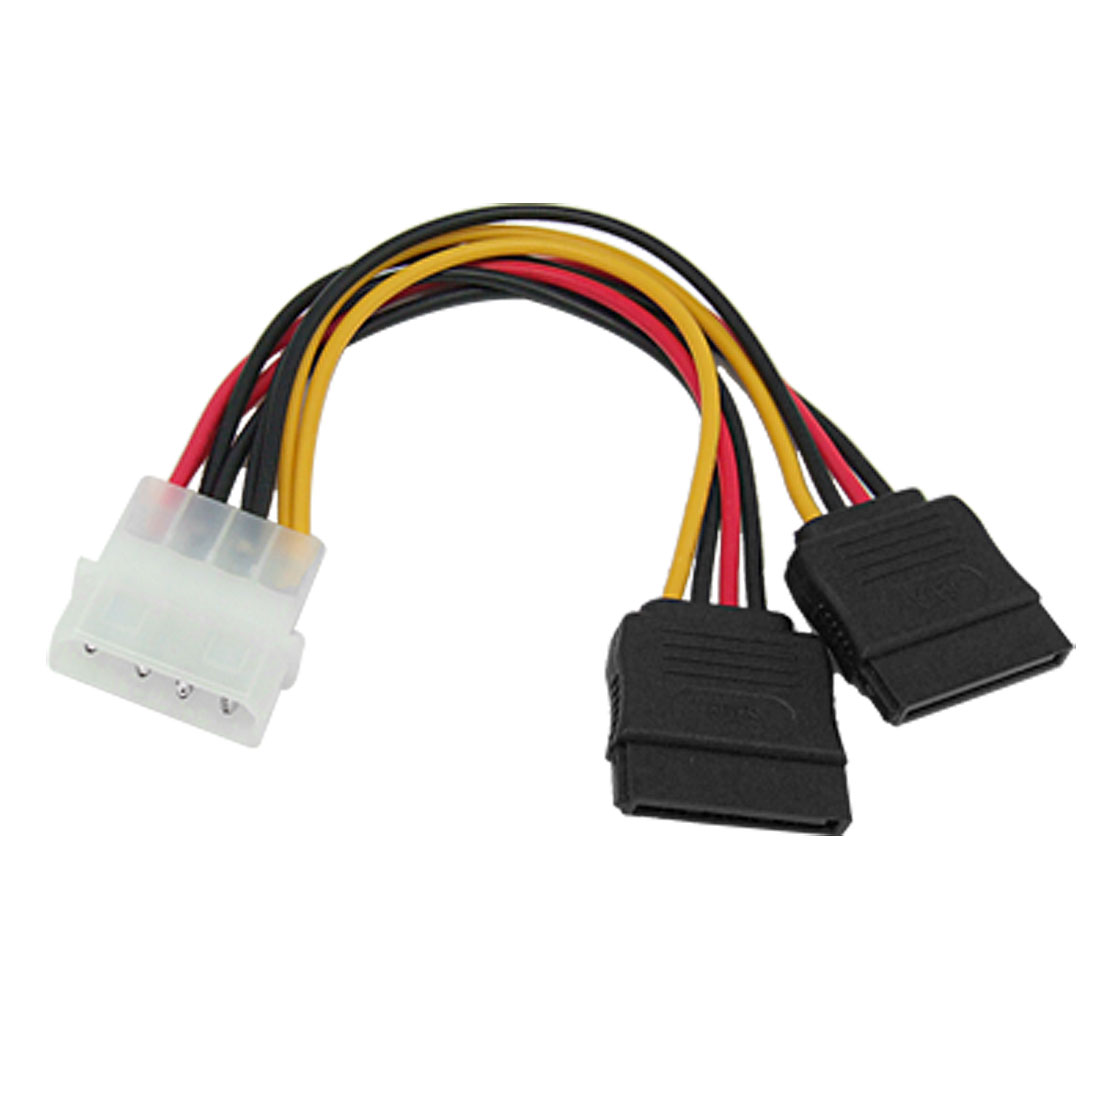 2 Port 15 Pin SATA Splitter Power Connector Cable